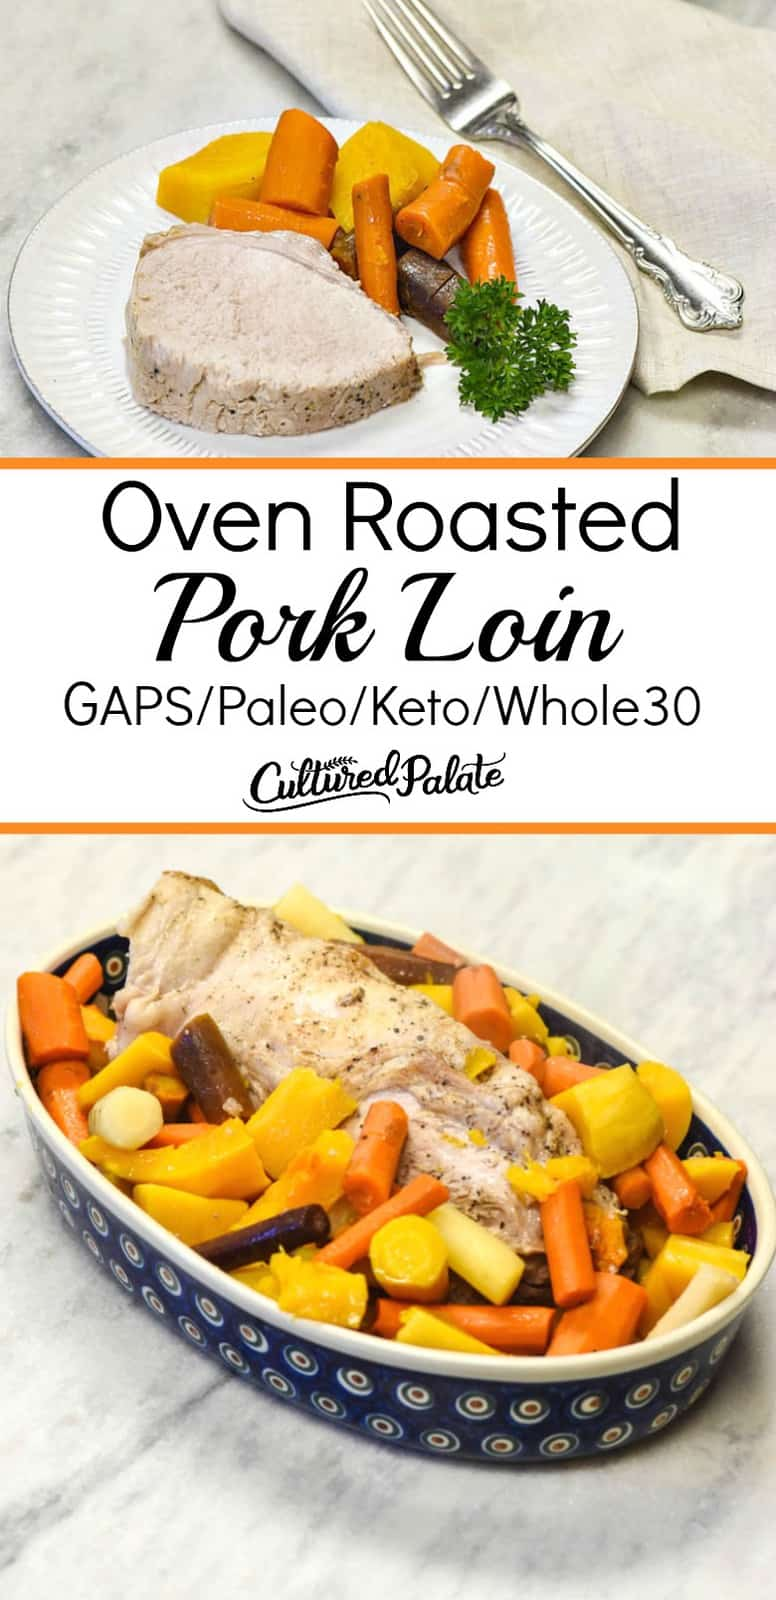 2 images of Oven Roasted pork loin with text overlay